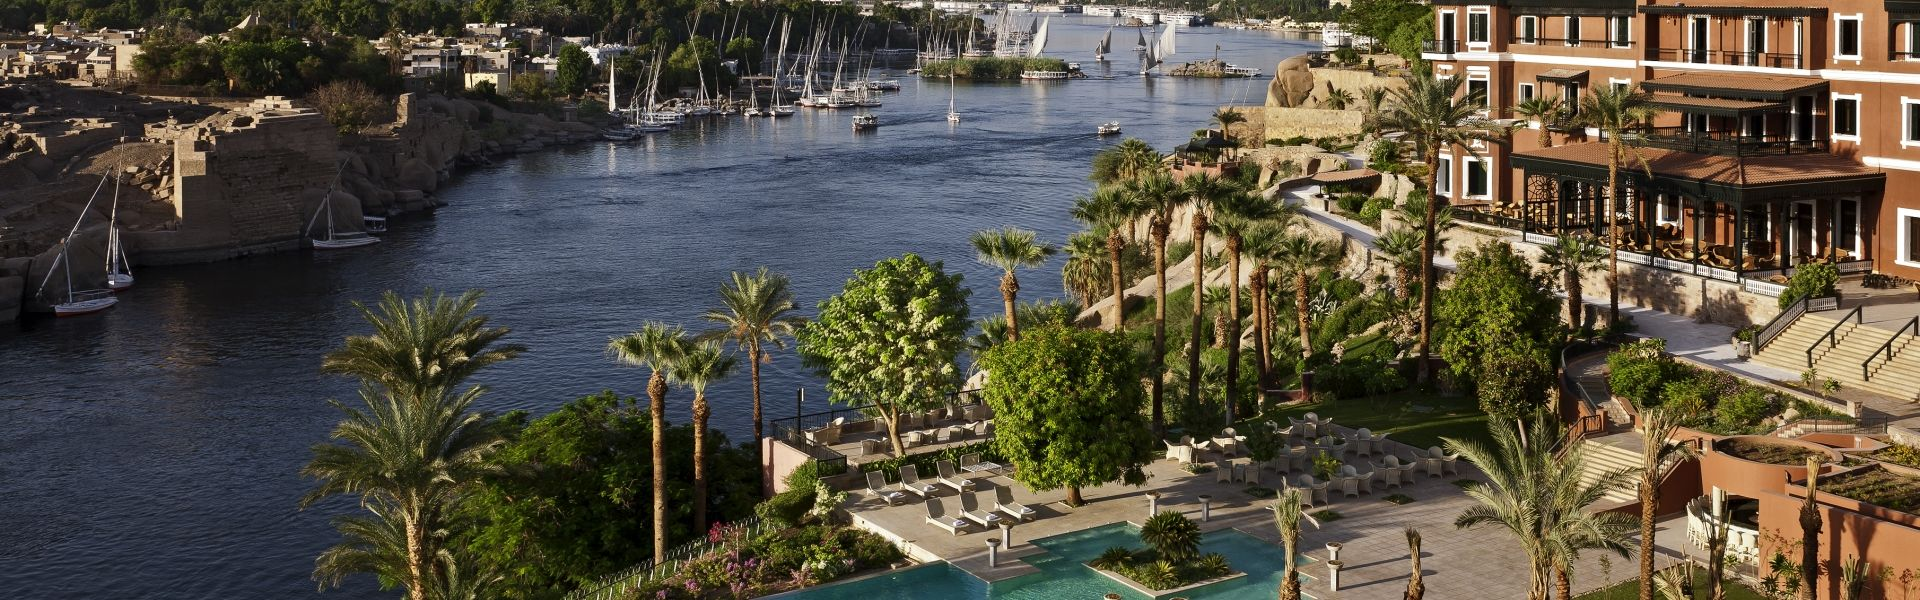 Sofitel Legend Old Cataract Aswan Luxury Holidays In Egypt